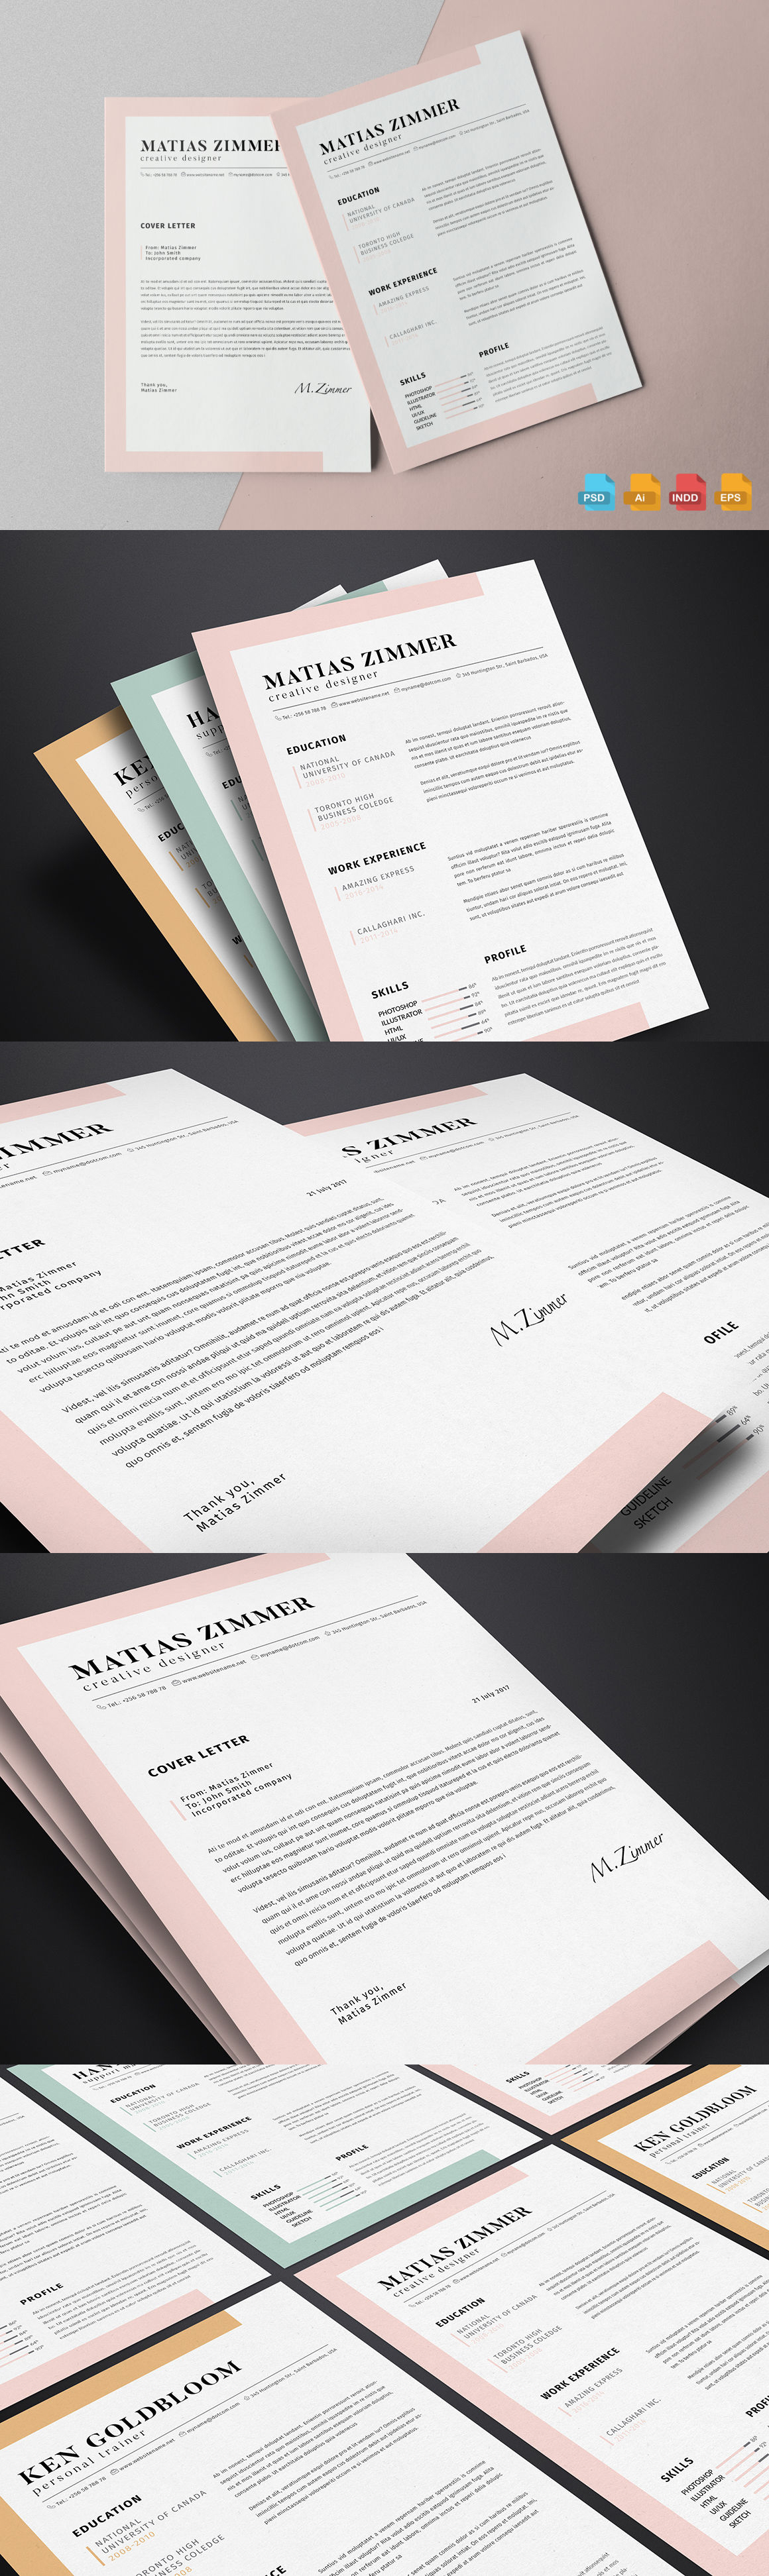 Clean Resume Template Ai Eps Indd Psd  Resume Templates